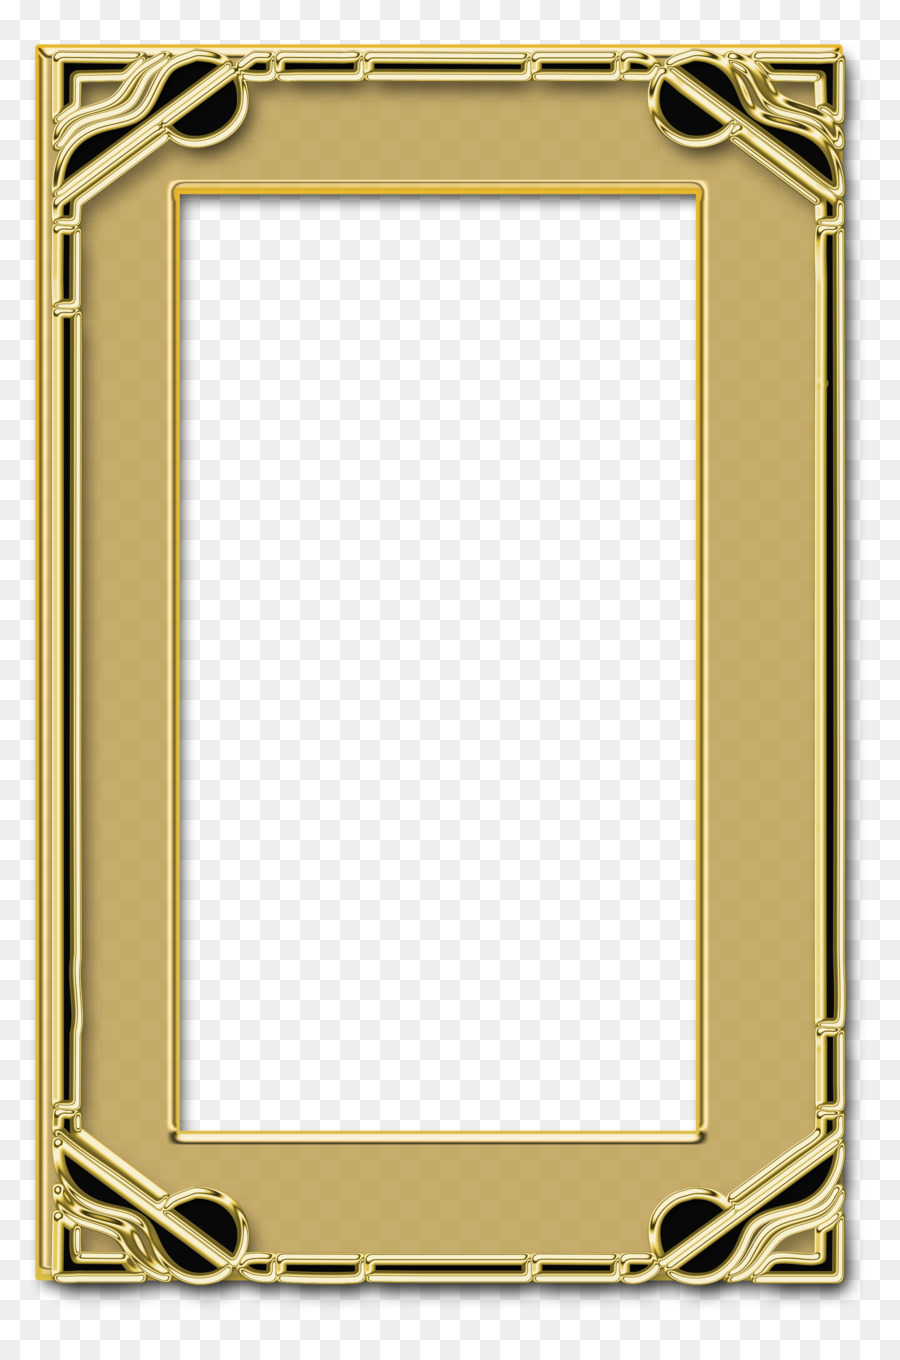 Picture Frames Paint.net - mirror png download - 2362*3543 - Free ...